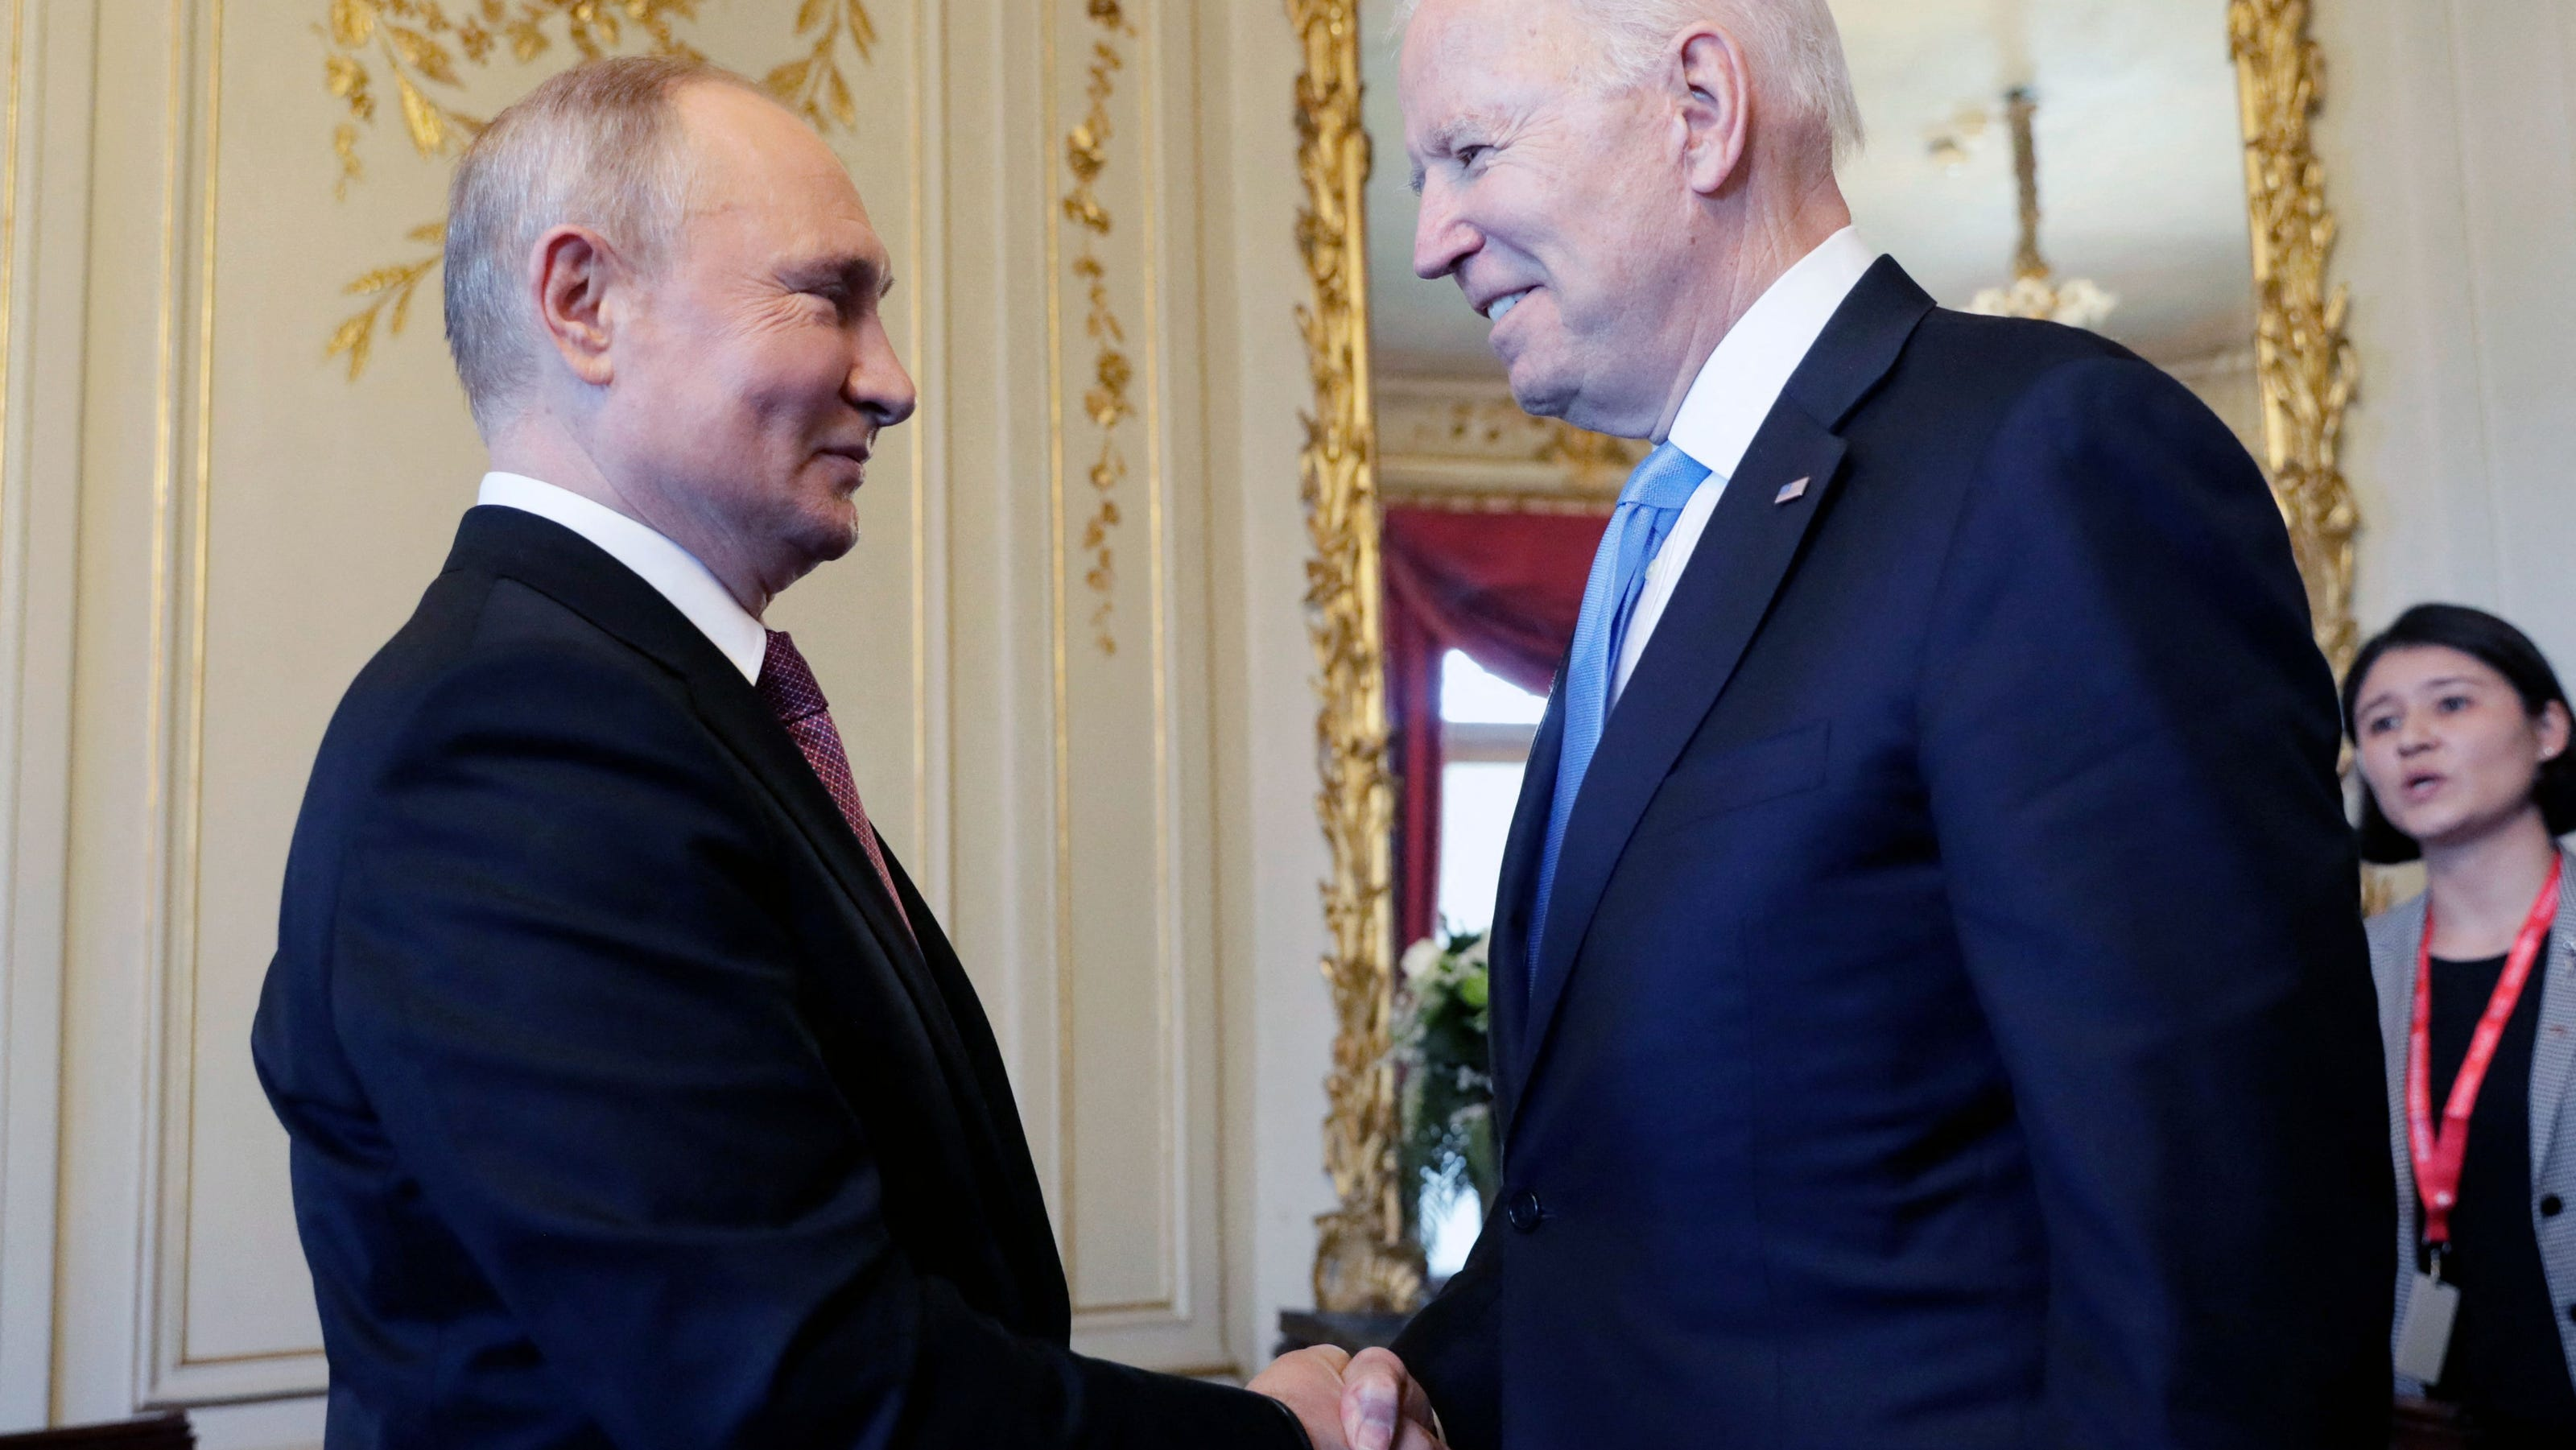 'I did what I came to do': Biden, Putin leave summit with agreements, but clear tensions remain